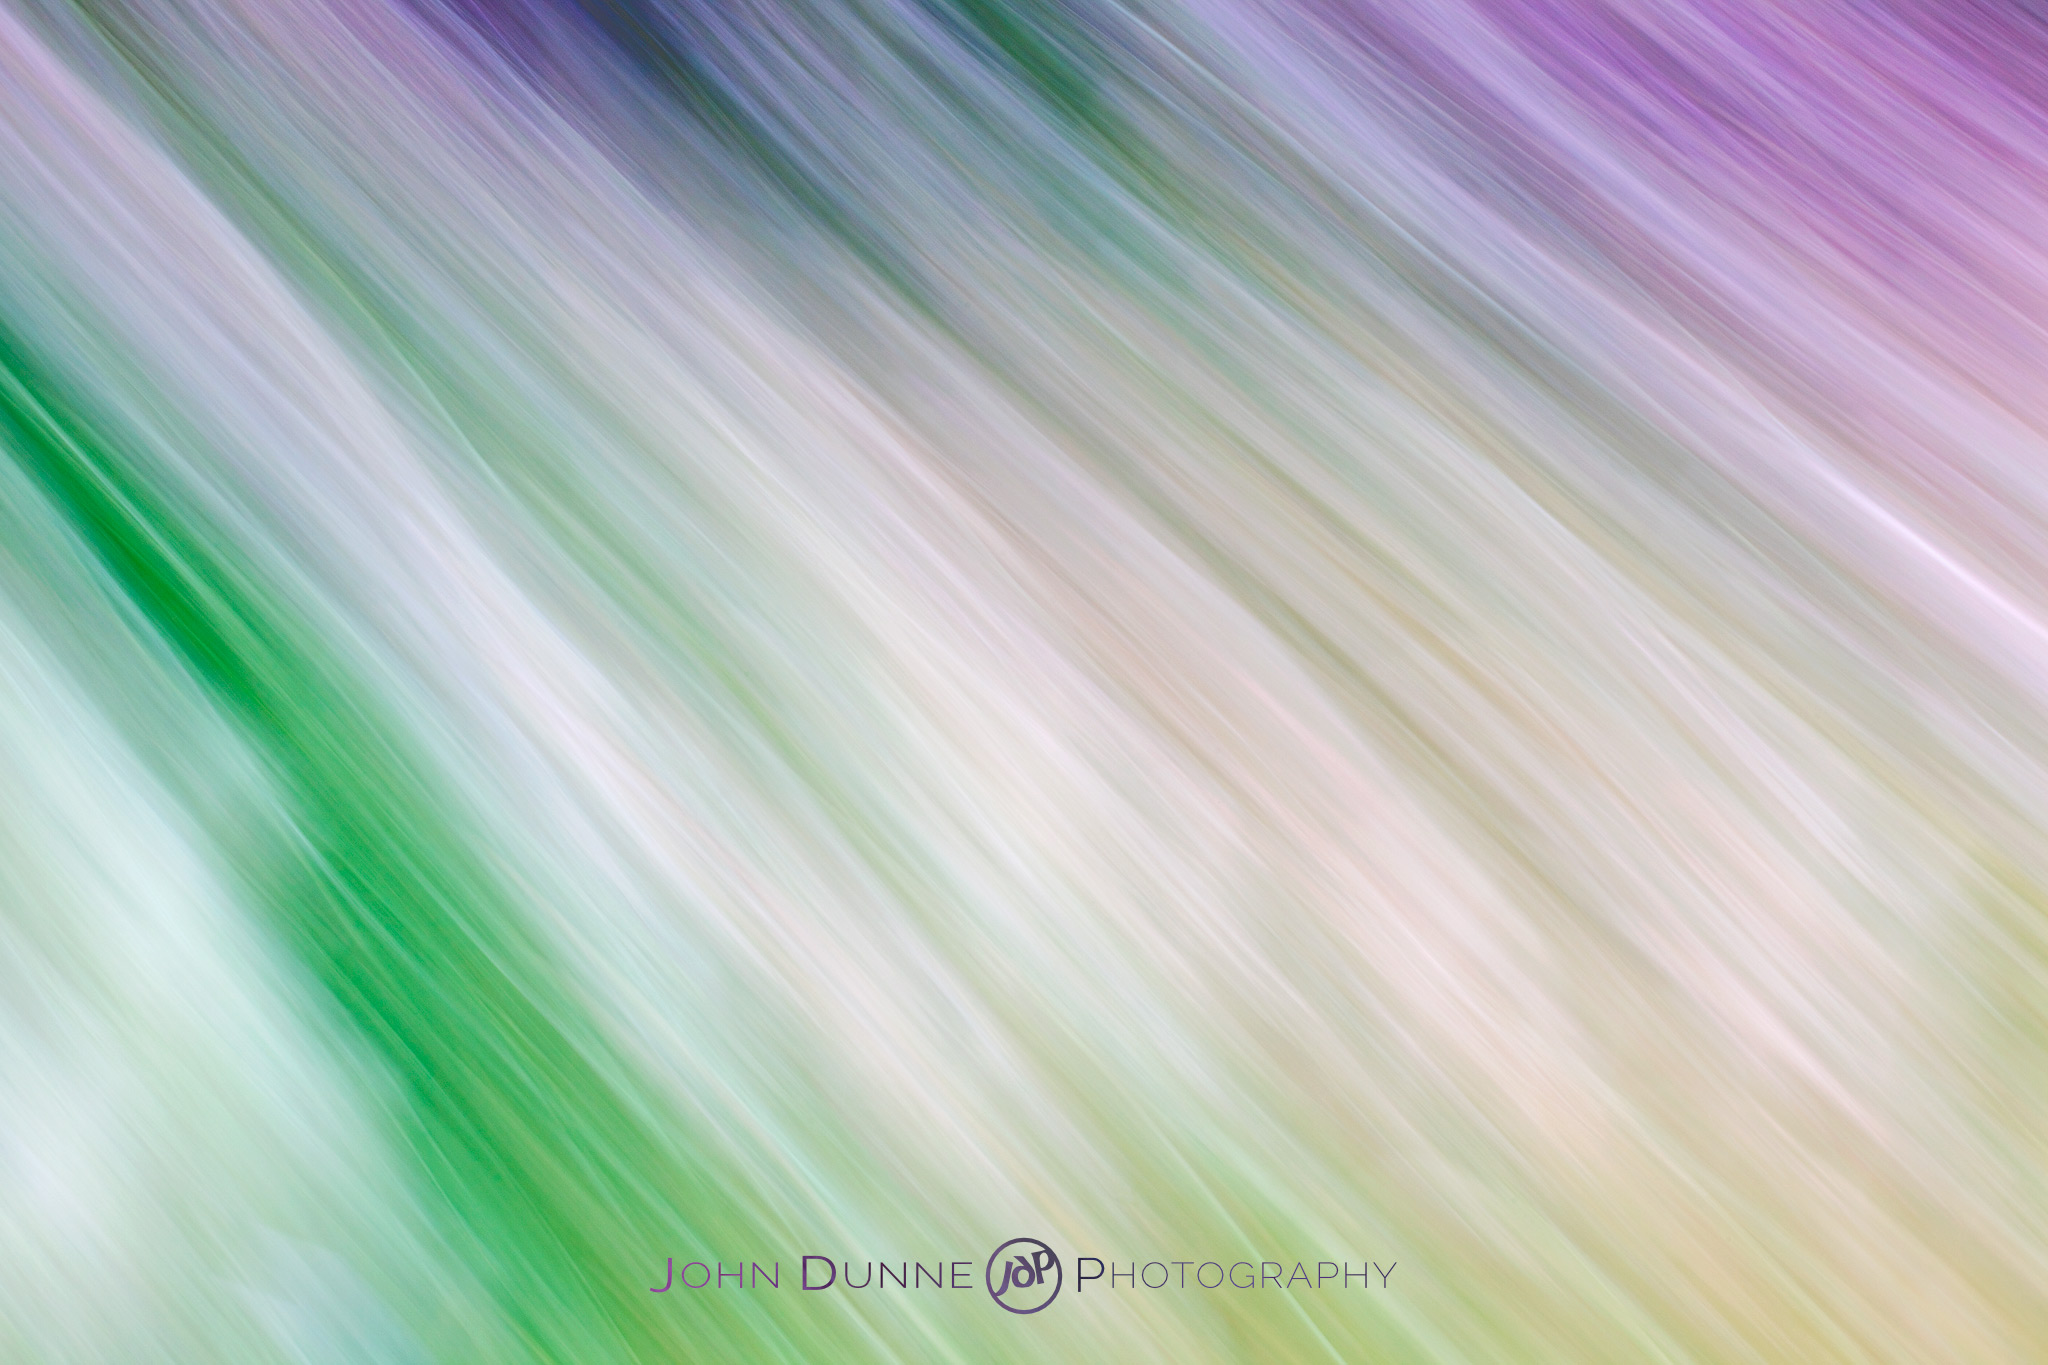 Autumnal Abstract #02 by John Dunne.